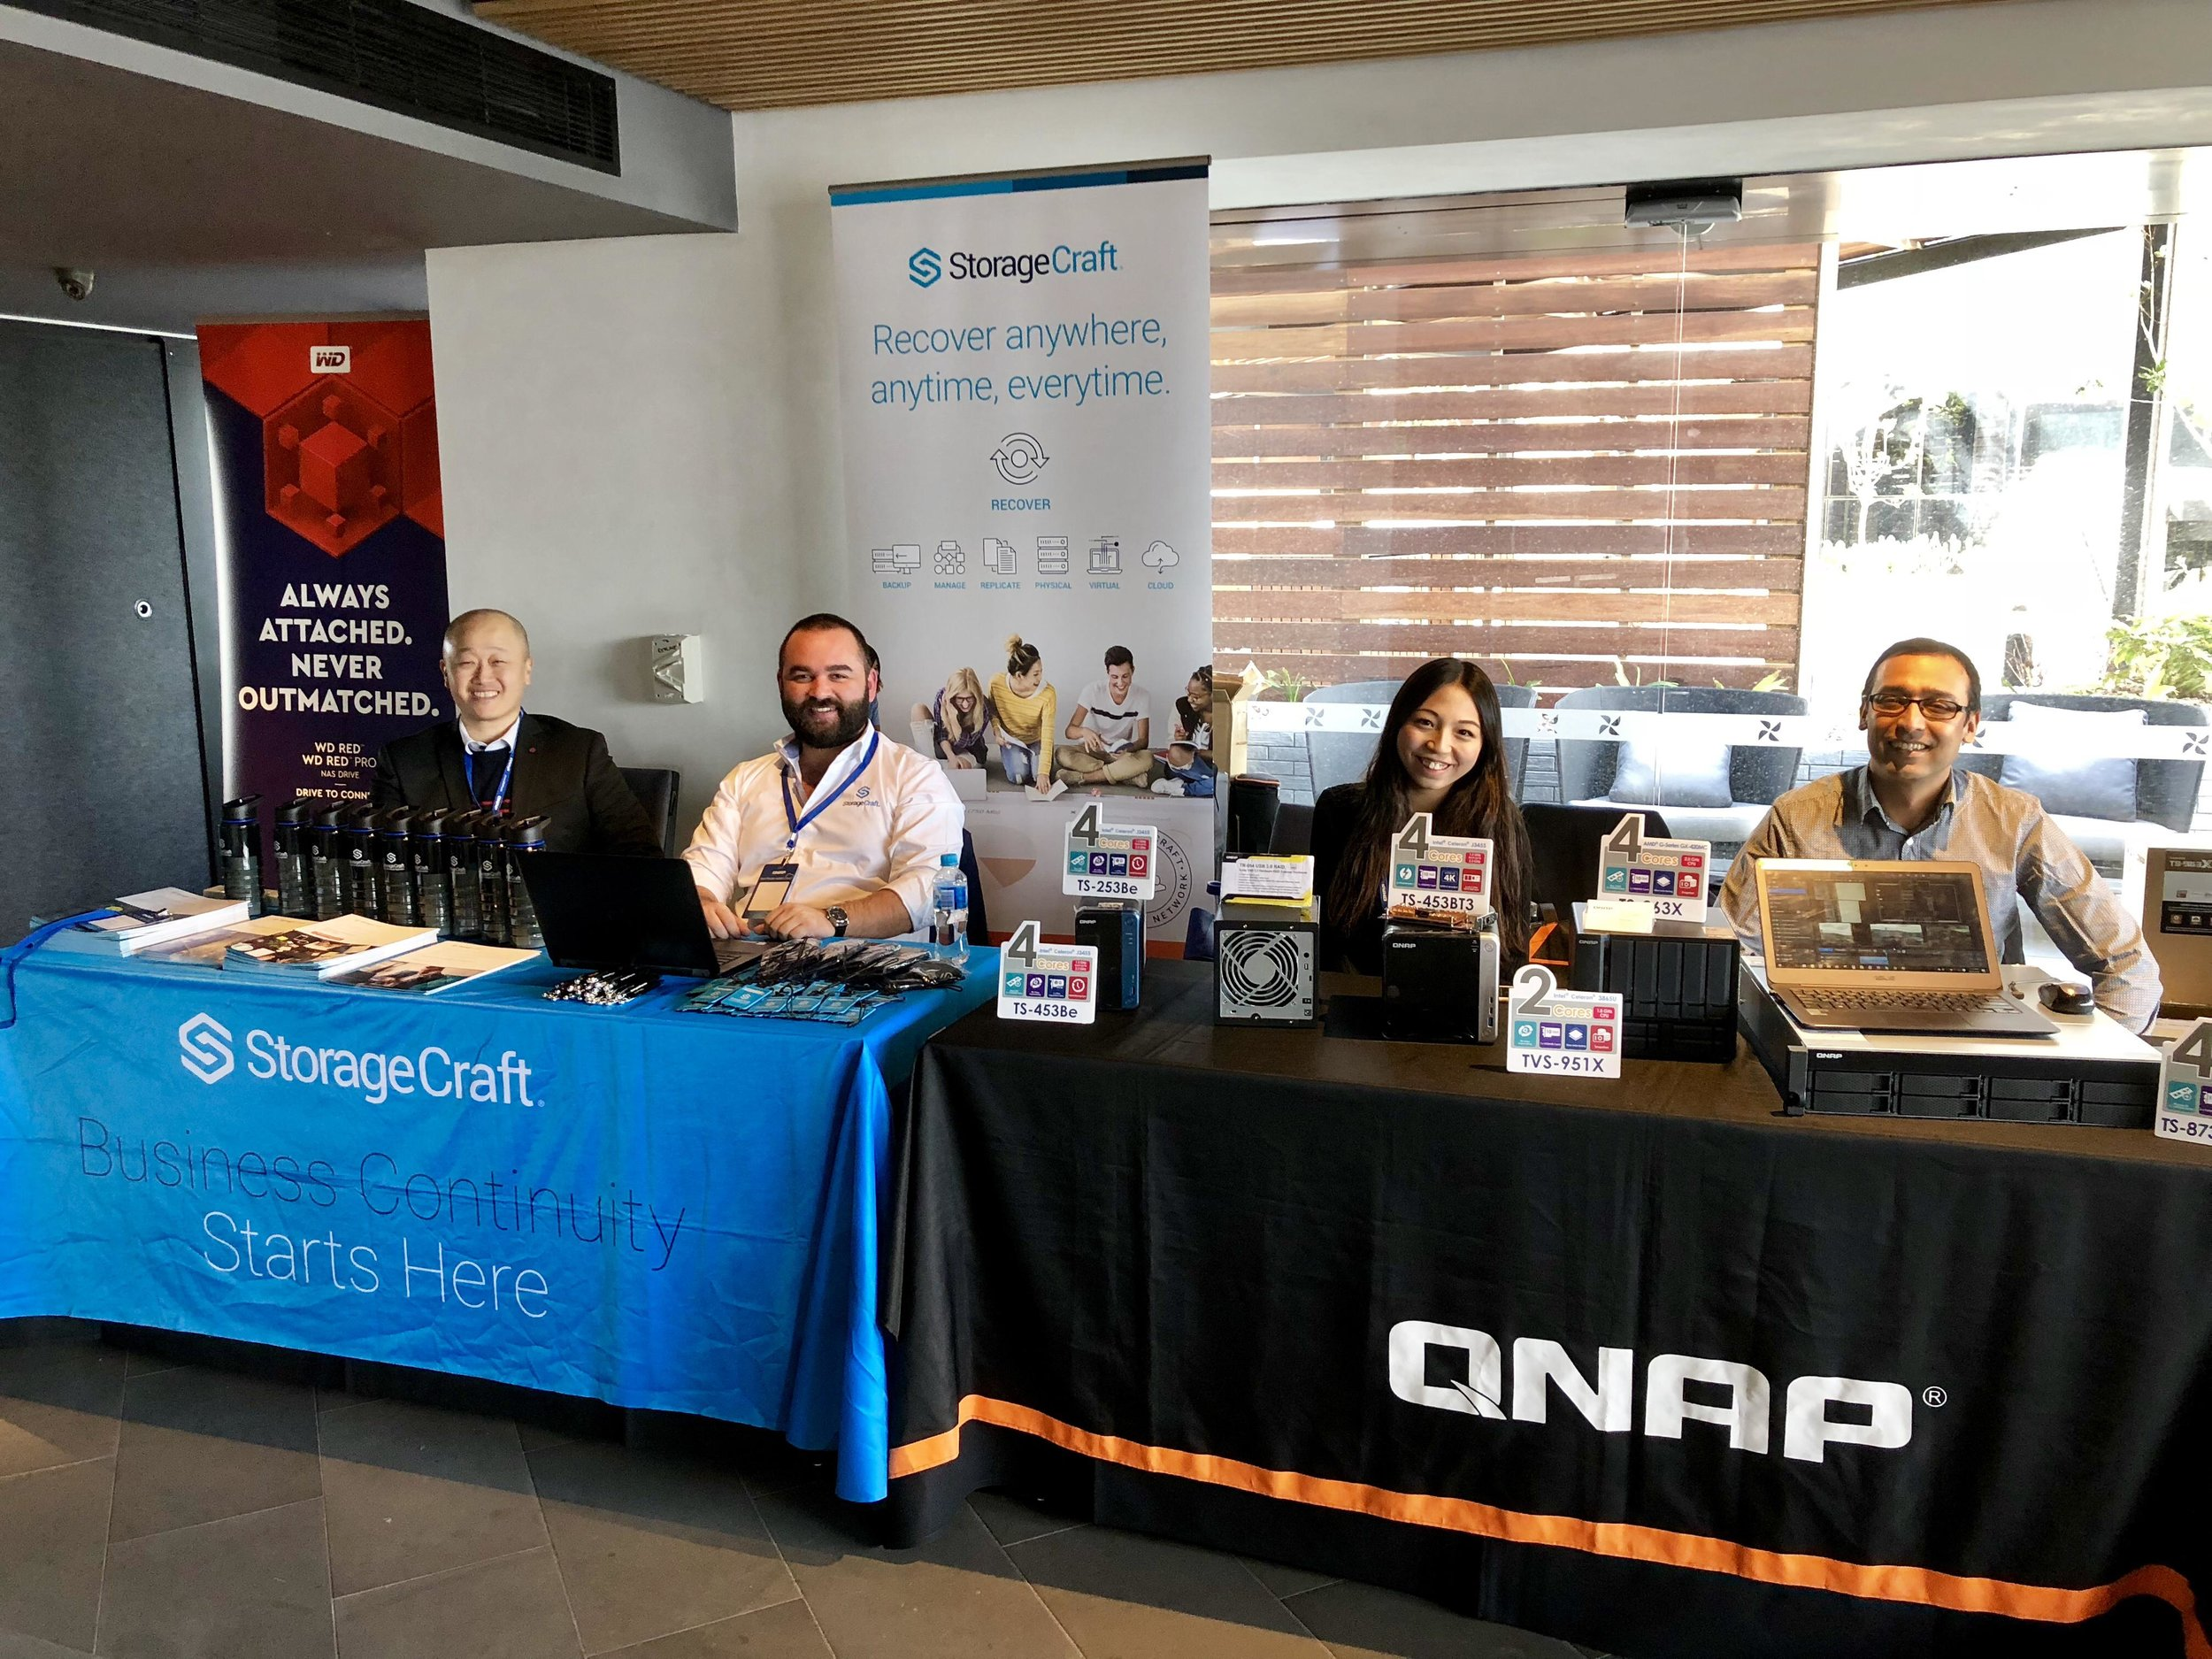 QNAP And Partners